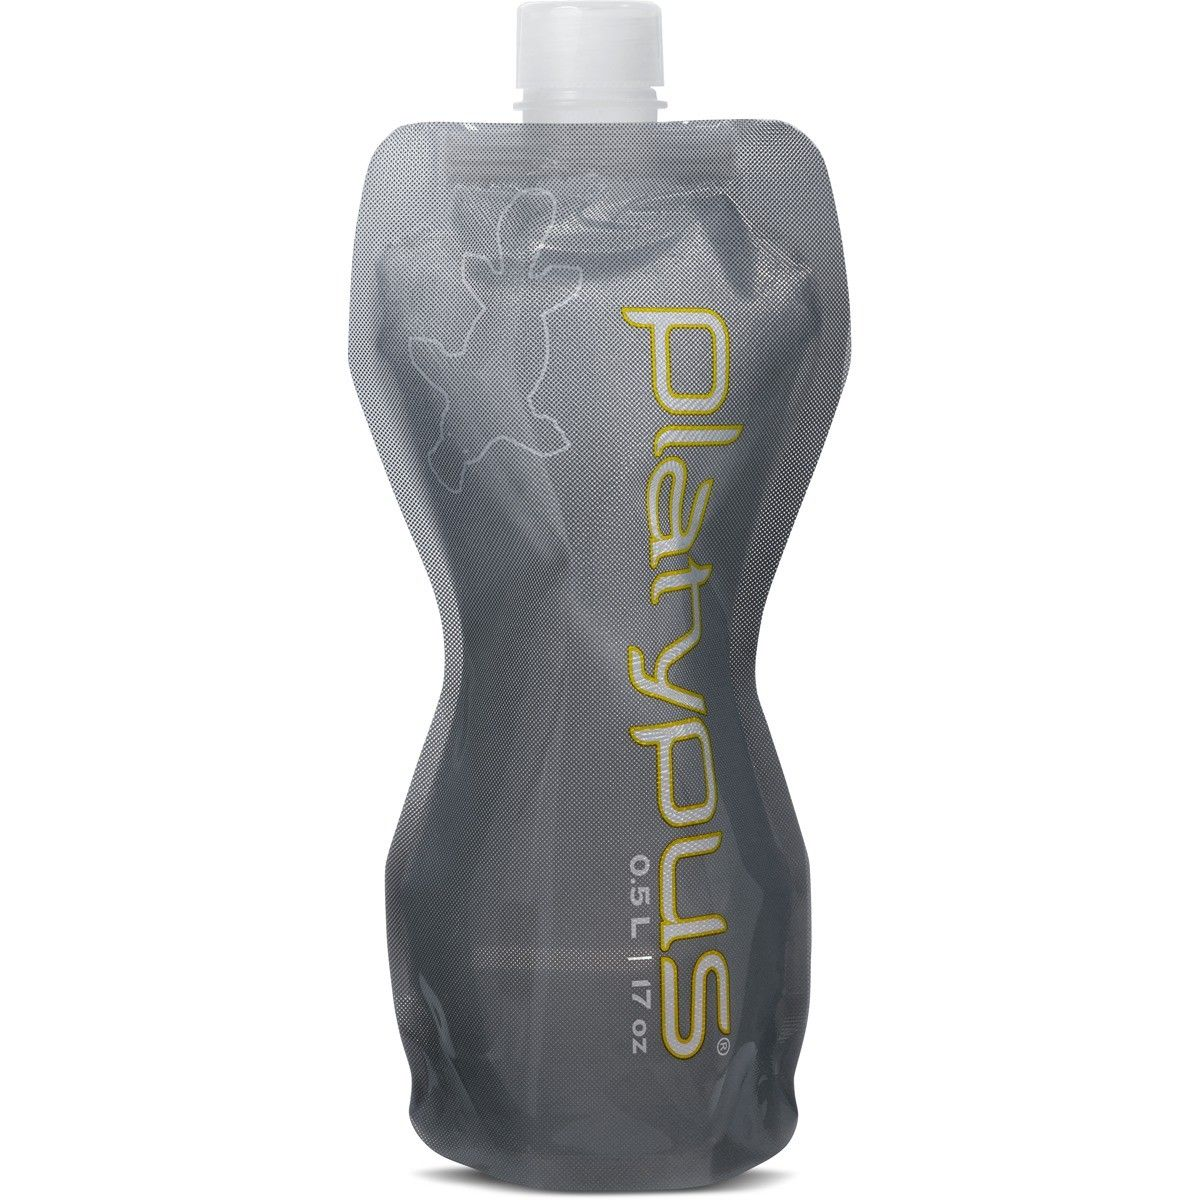 Platypus Softbottle Closure Cap 0.5L Grau, 0,5l -Farbe Gray, 0.5l